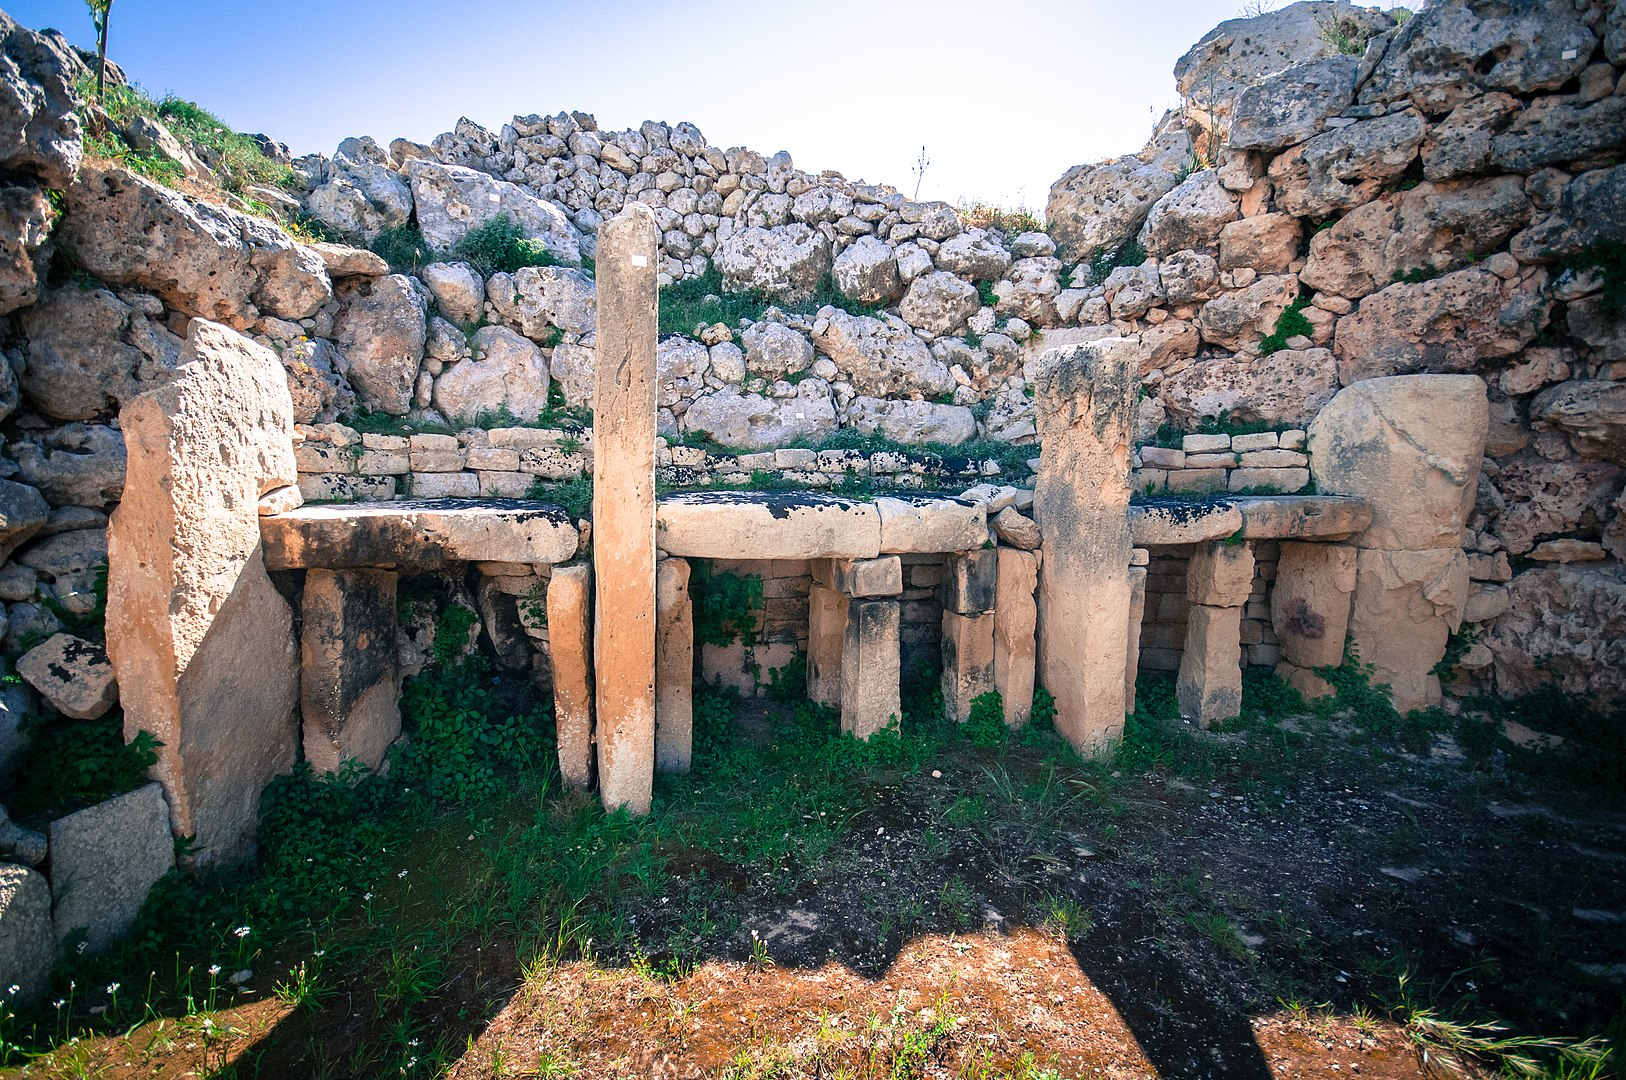 The Ġgantija temples of Malta are among the earliest free-standing buildings known. Image credit - Bs0u10e01, licensed under CC BY-SA 4.0